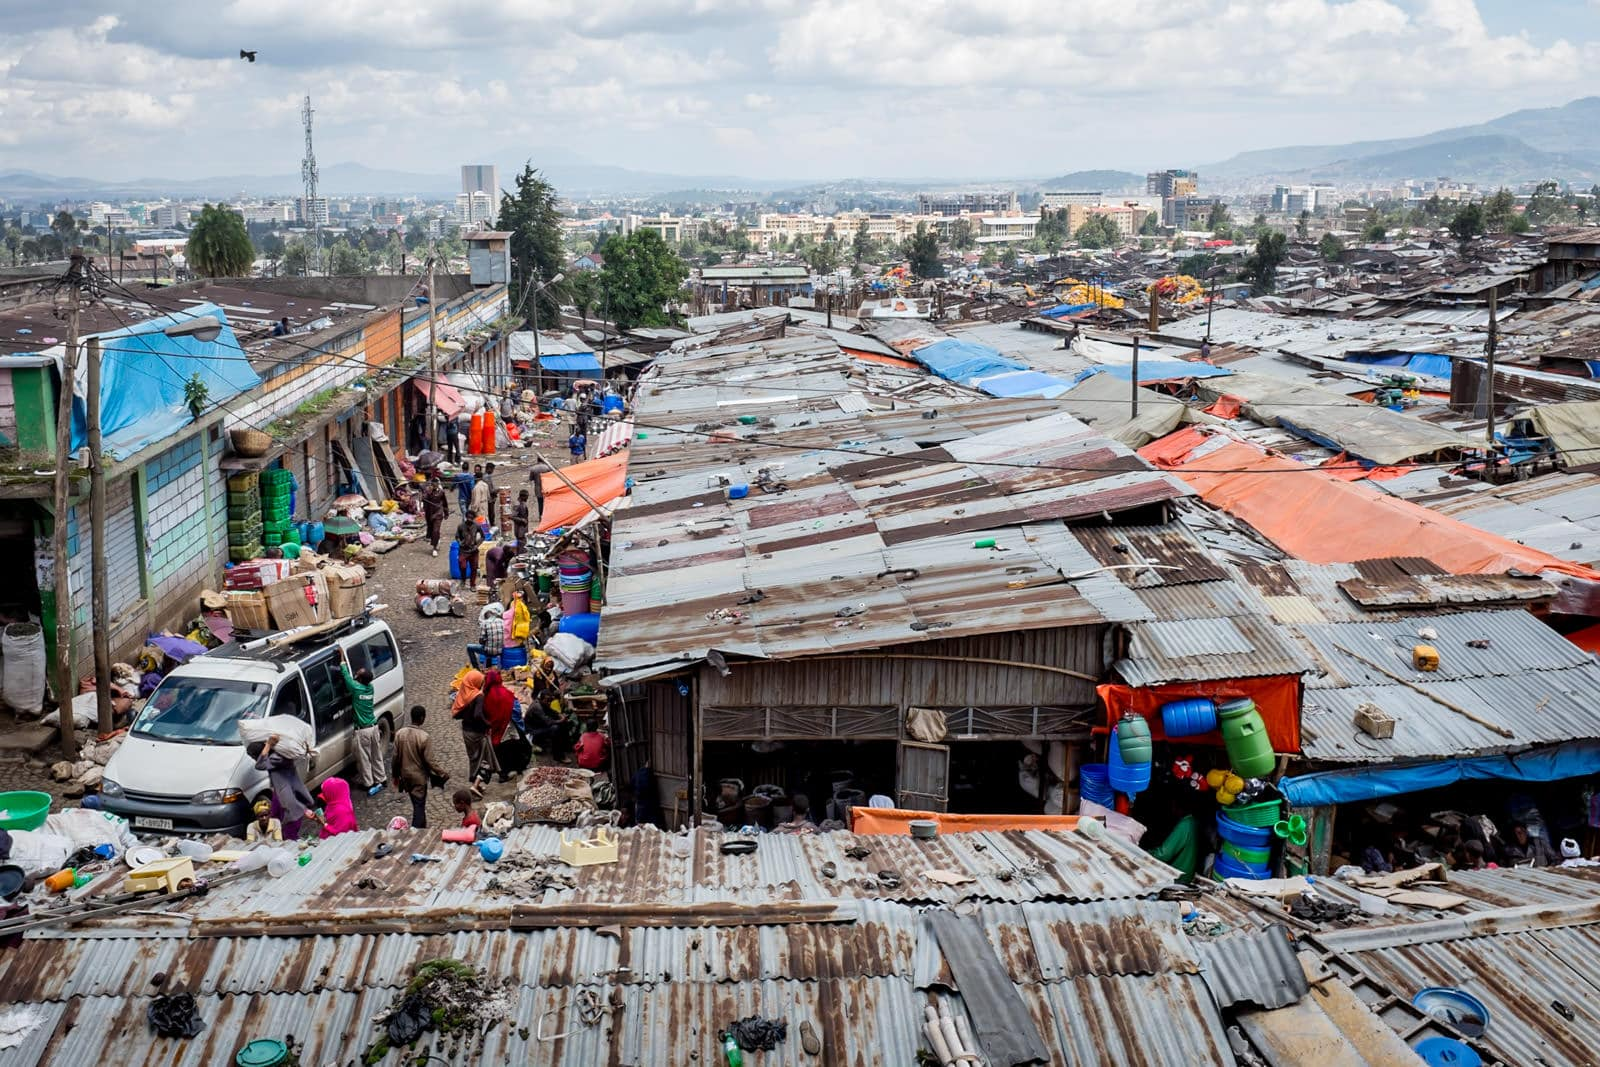 Overview of the tin roofs of Addis Merkato in Ethiopia